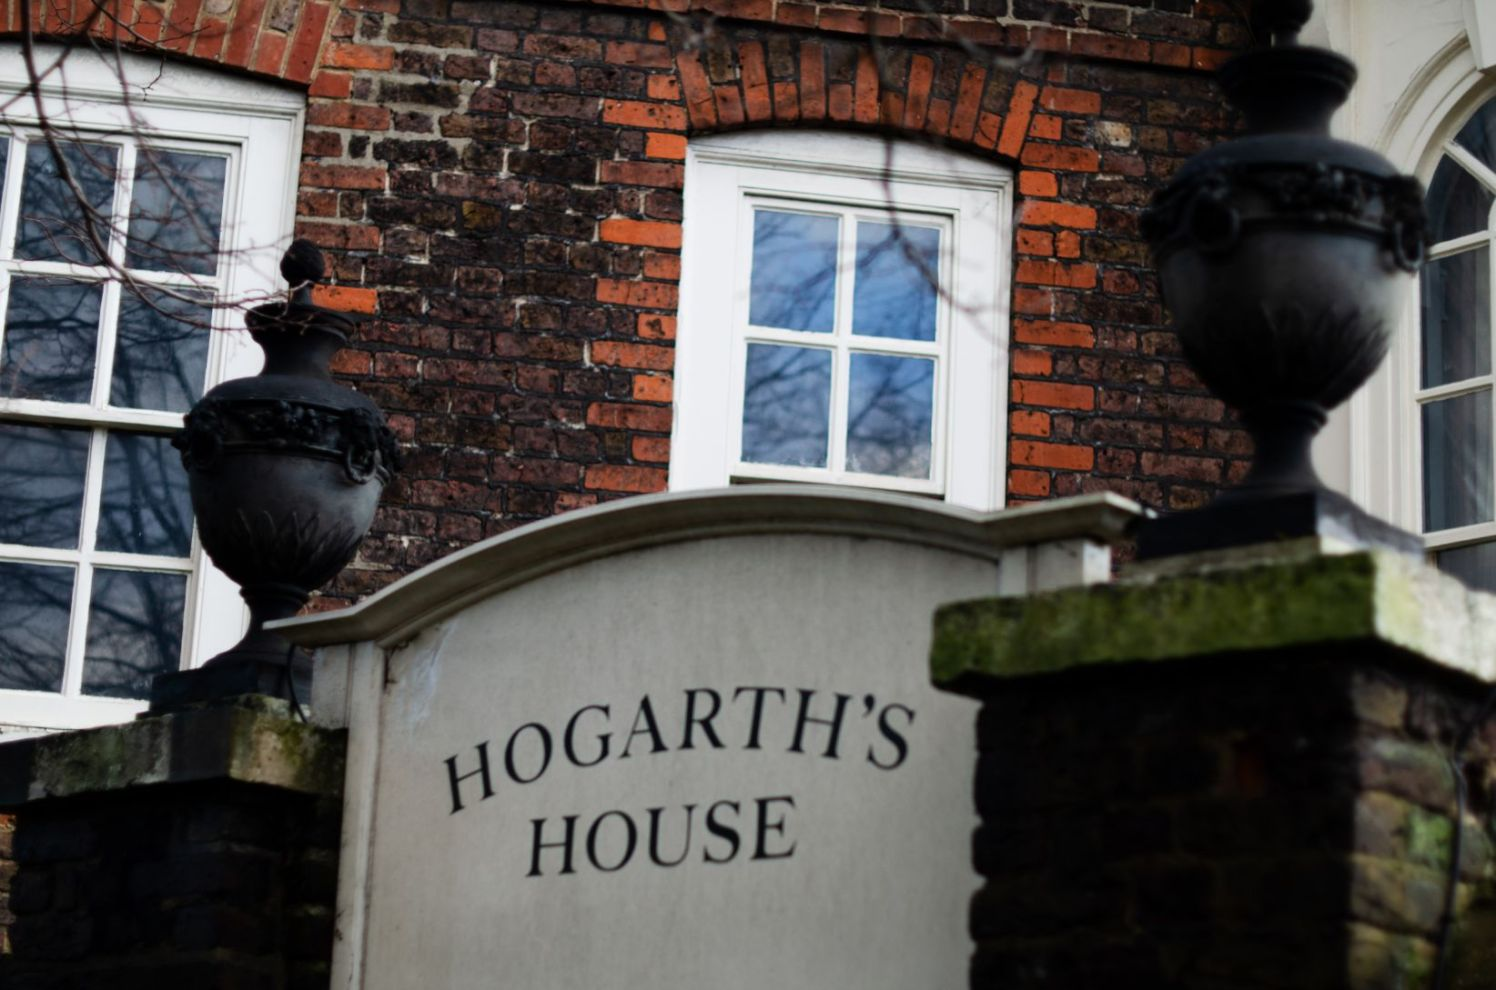 Hogarth's House - Nick Raikes_web